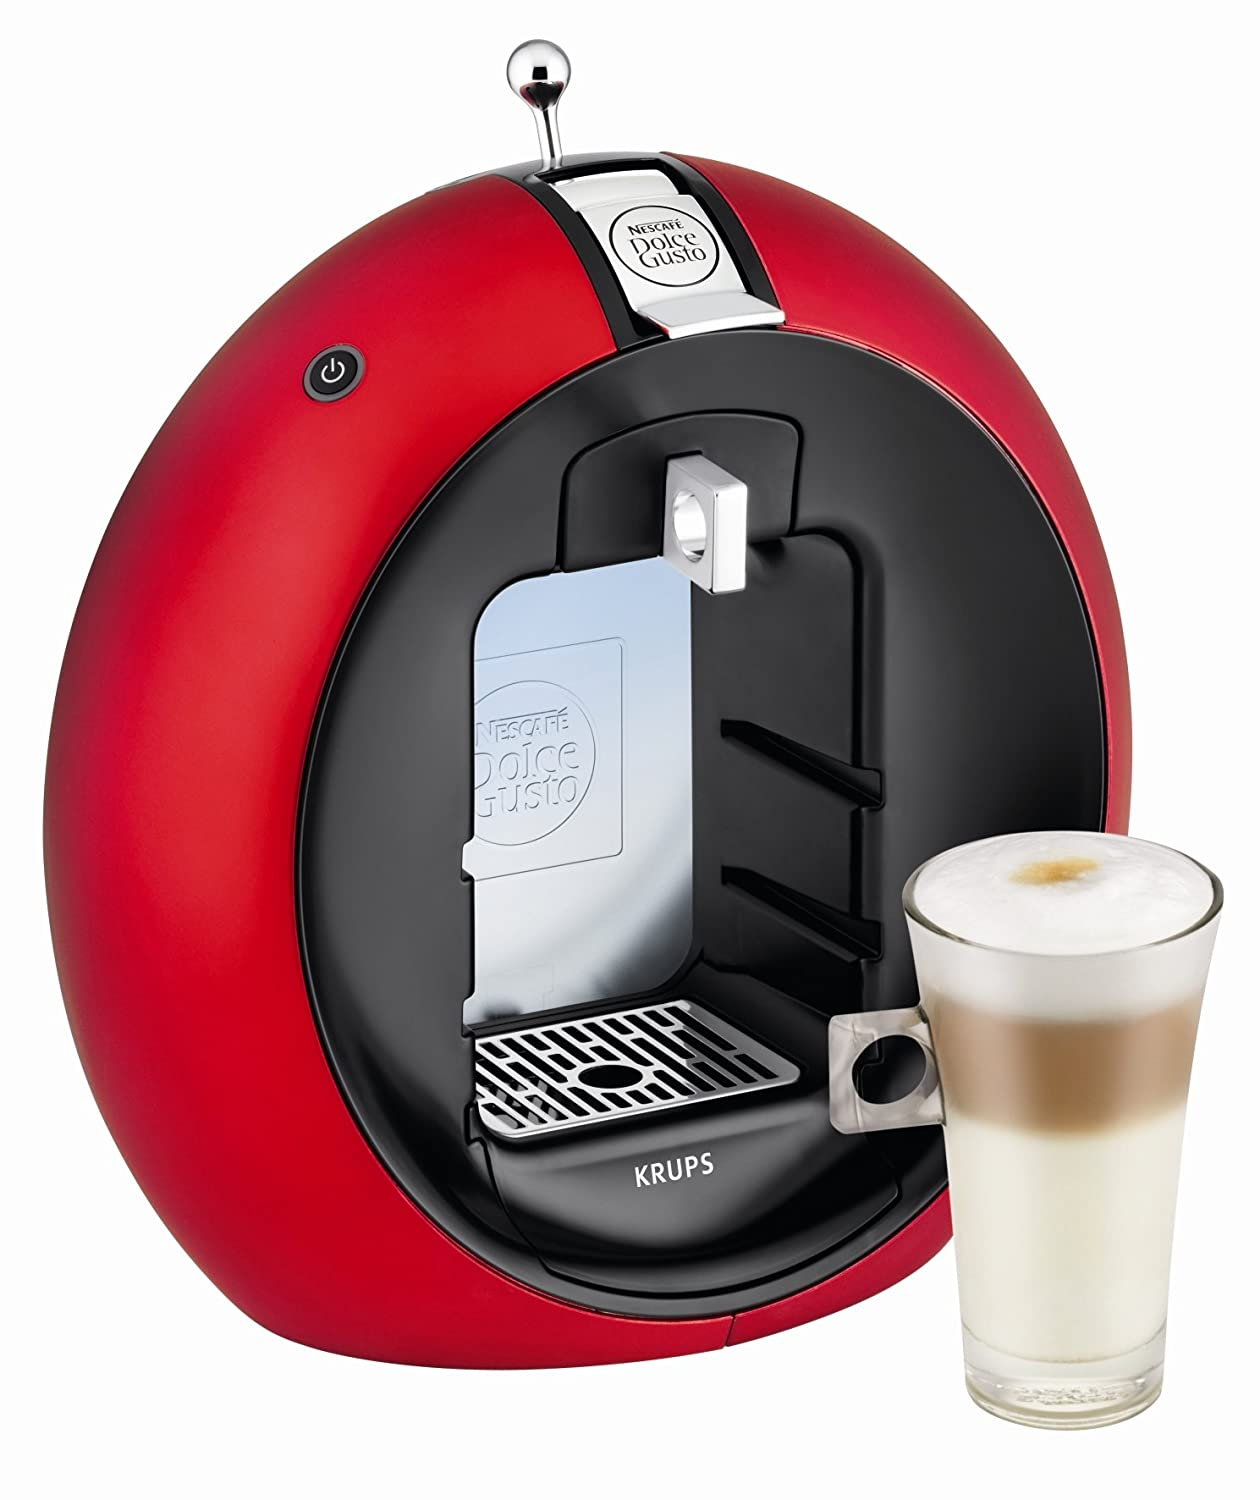 krups kp5006 nescafe dolce gusto circolo coffee machine red kp5006 ebay. Black Bedroom Furniture Sets. Home Design Ideas